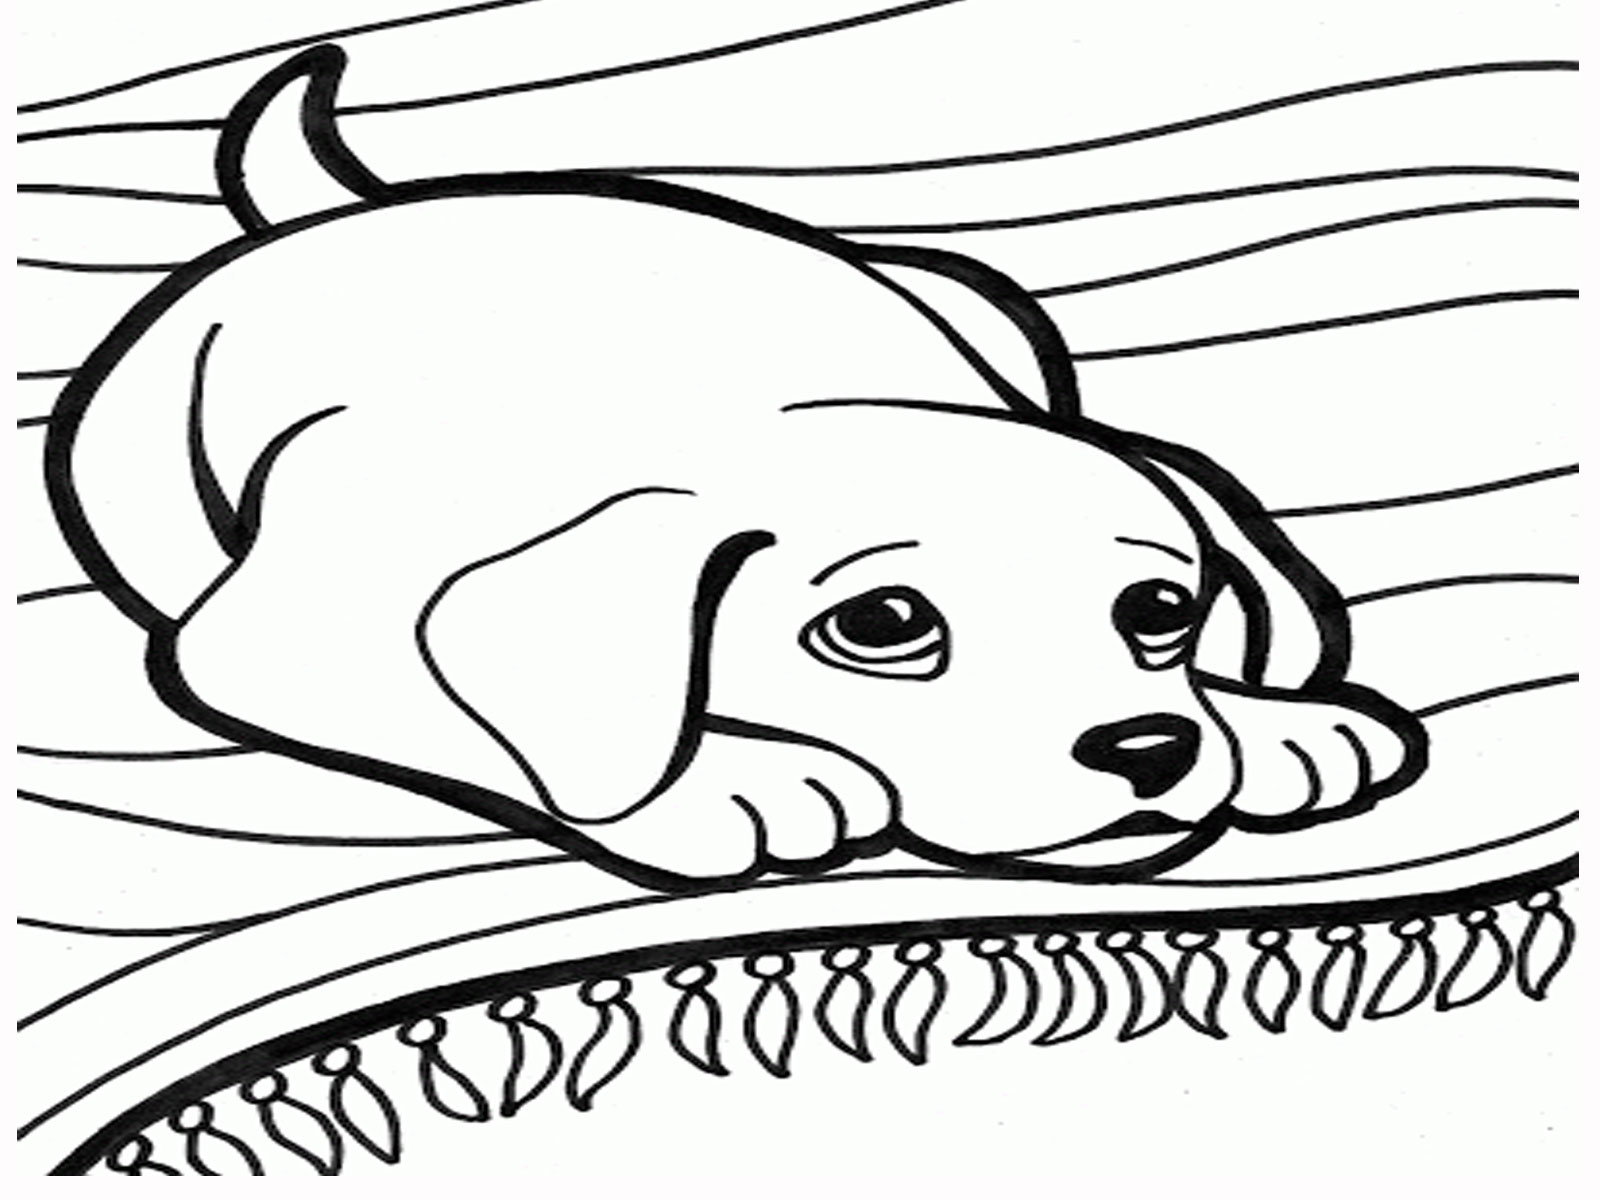 Dog Coloring Pages At Getdrawings Com Free For Personal